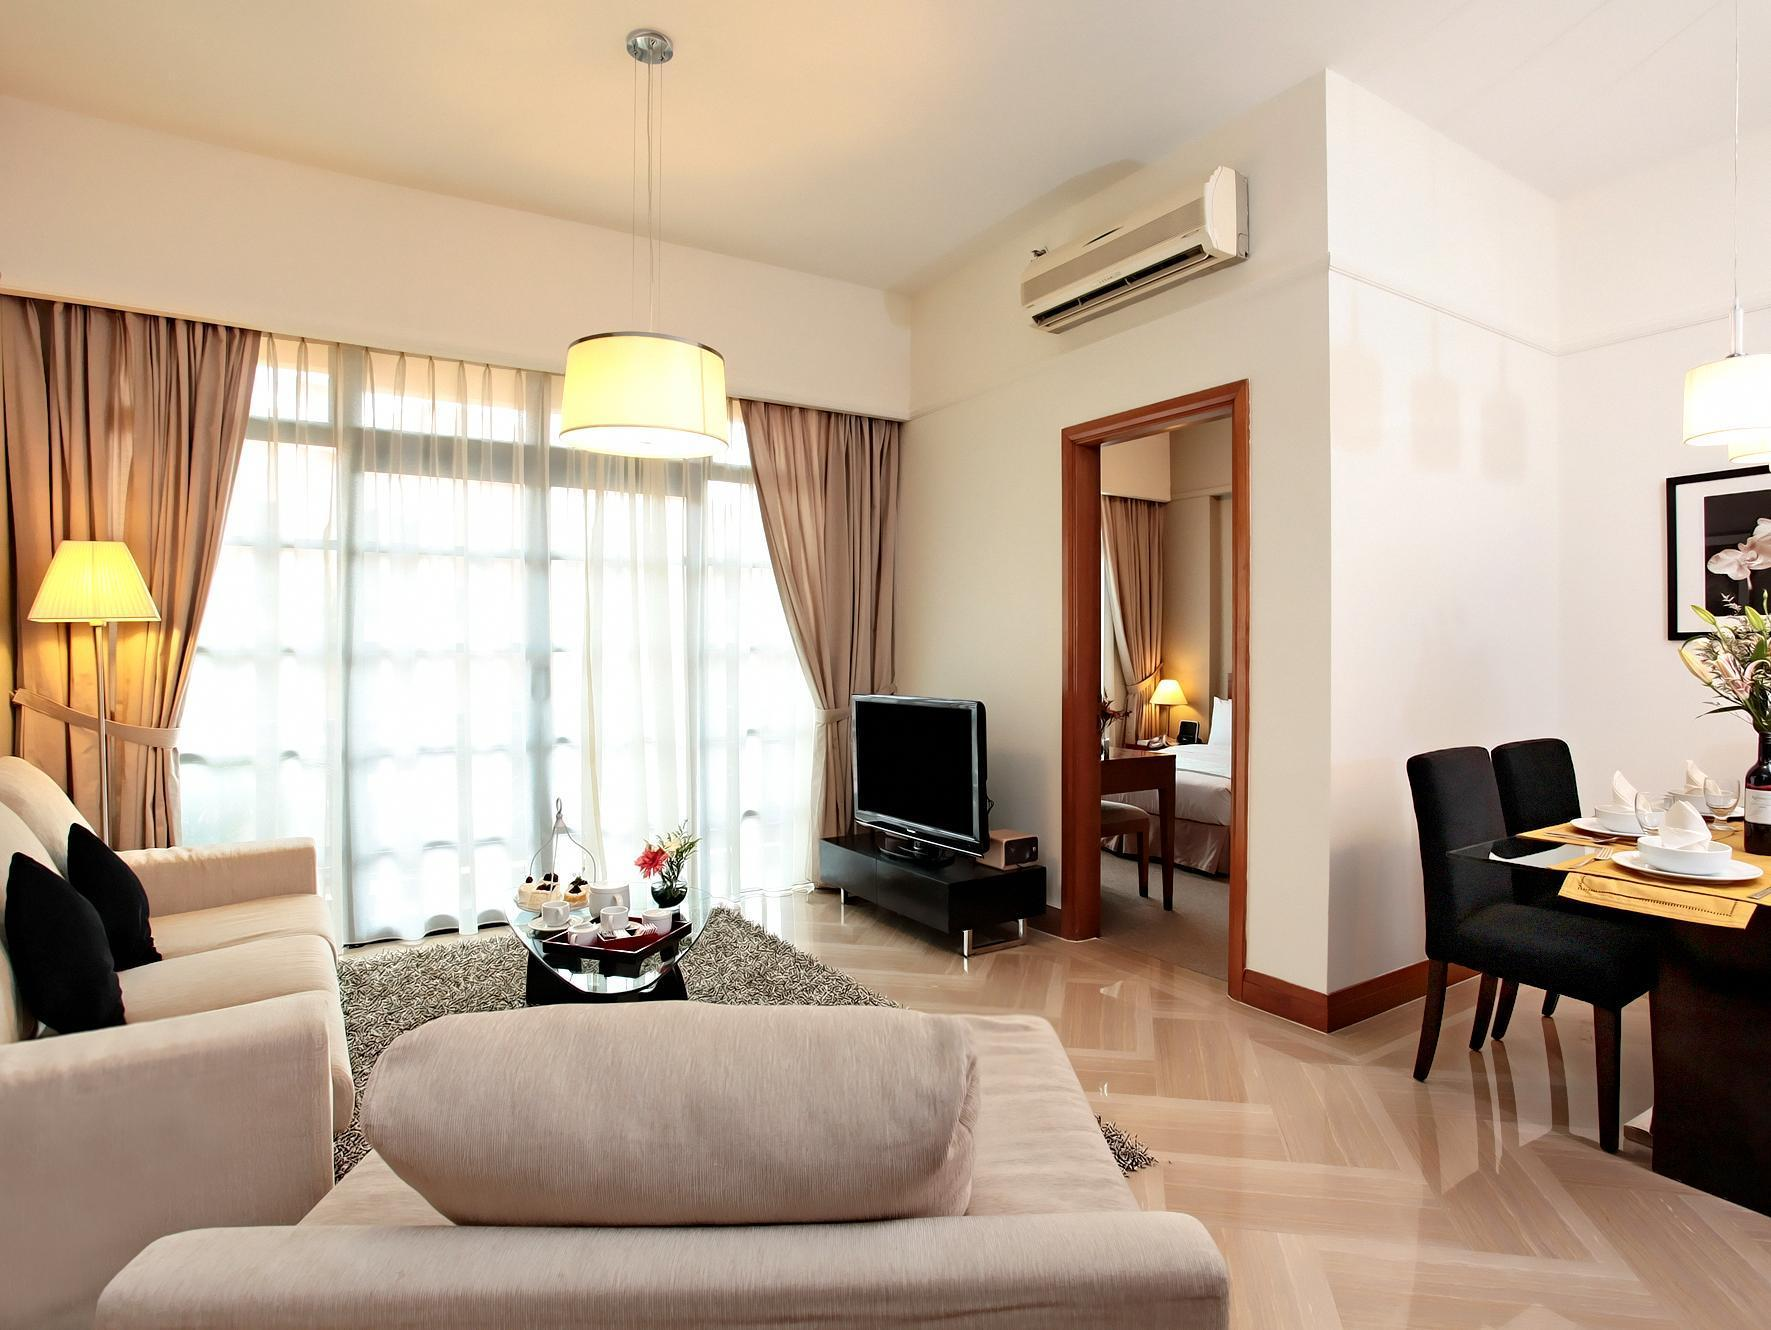 Village Residence Robertson Quay by Far East Hospitality5